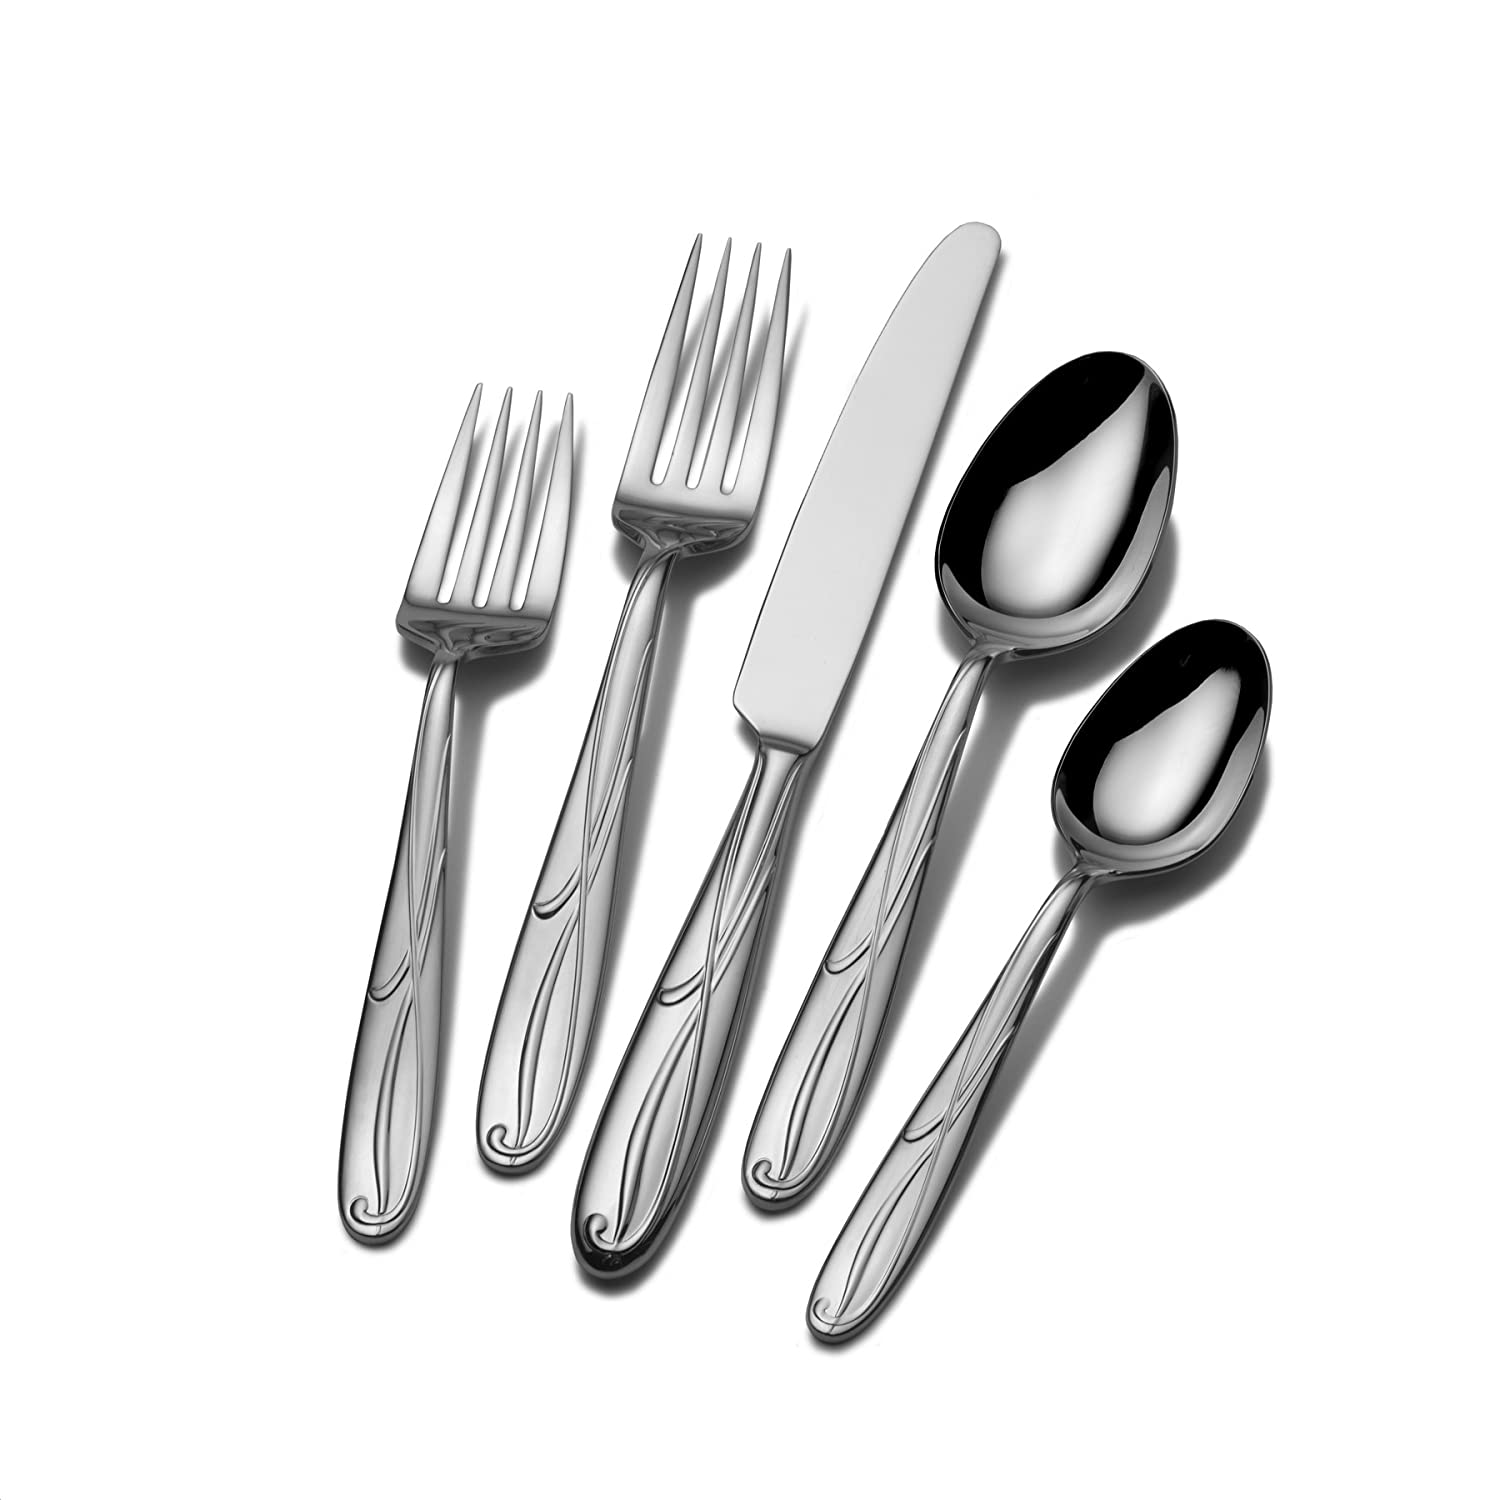 Amazon.com Top Rated: The best in Flatware Sets based on Amazon